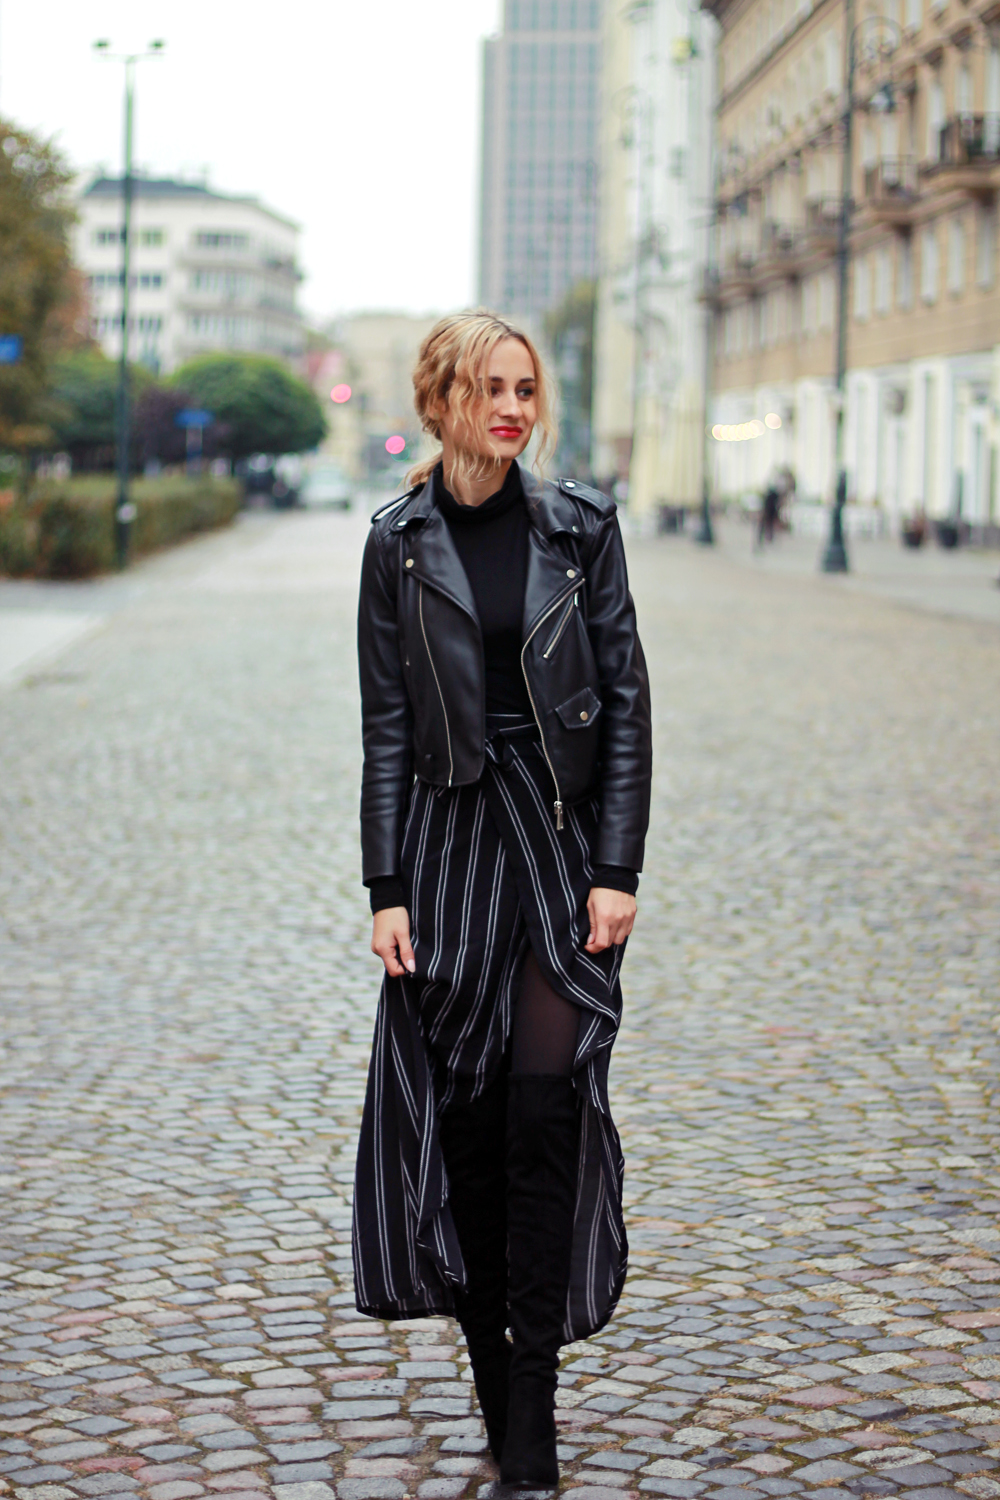 Ootd Street Style Fashion How To Wear Summer Clothes In Autumn